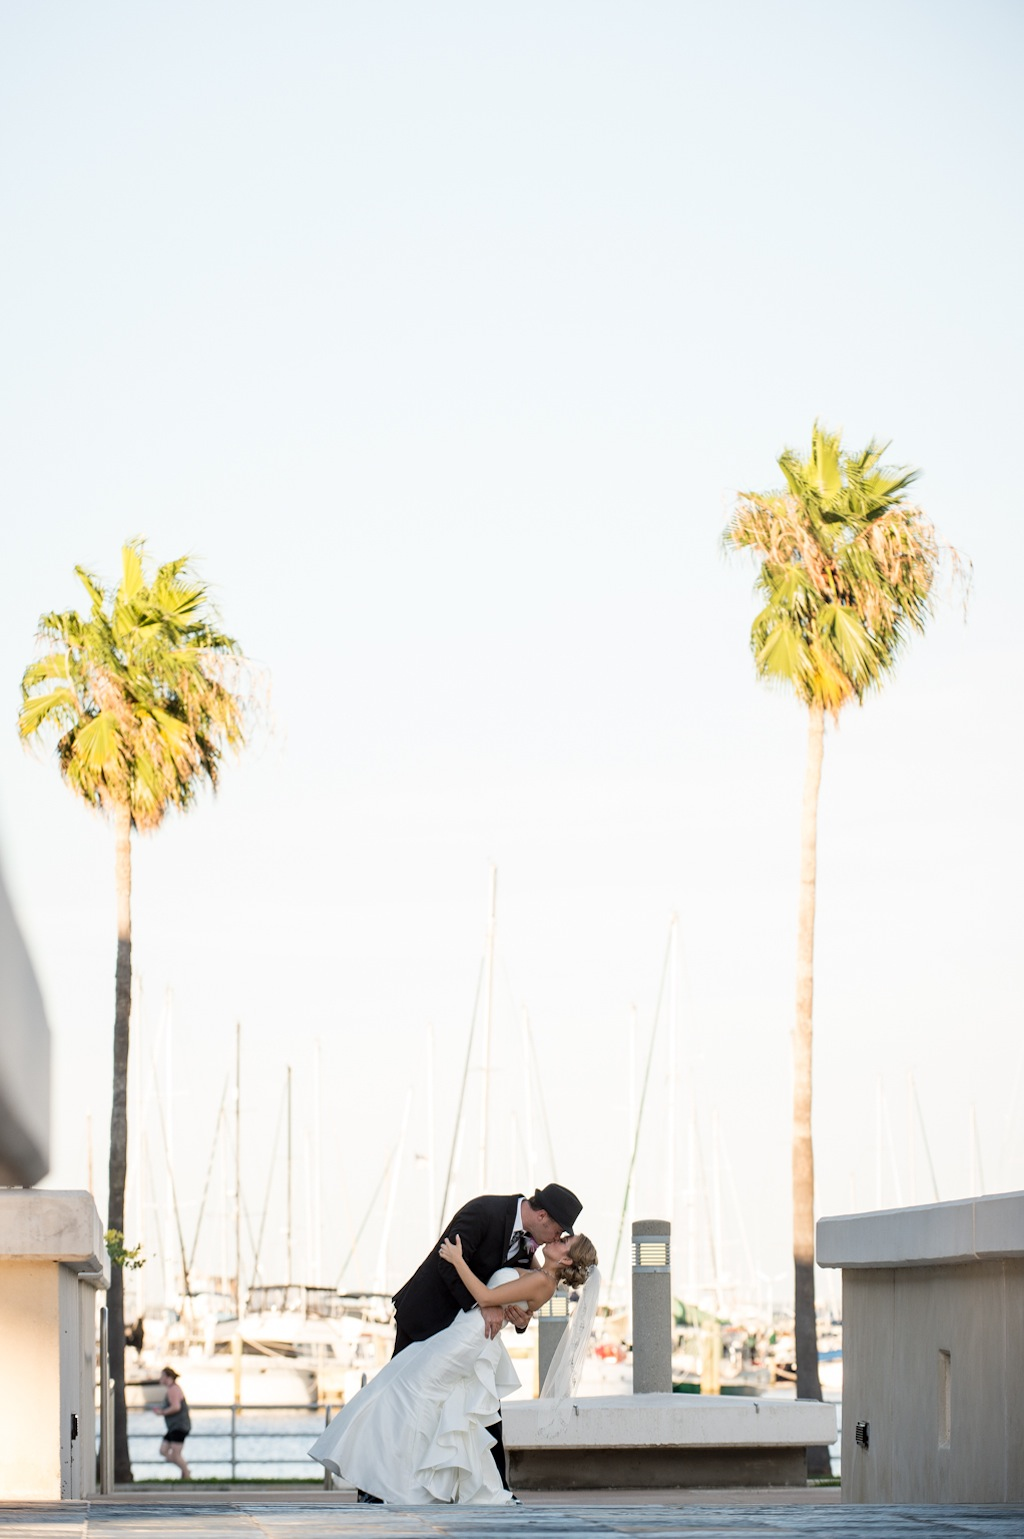 St. Pete Bride and Groom - Marc Edwards Photographs